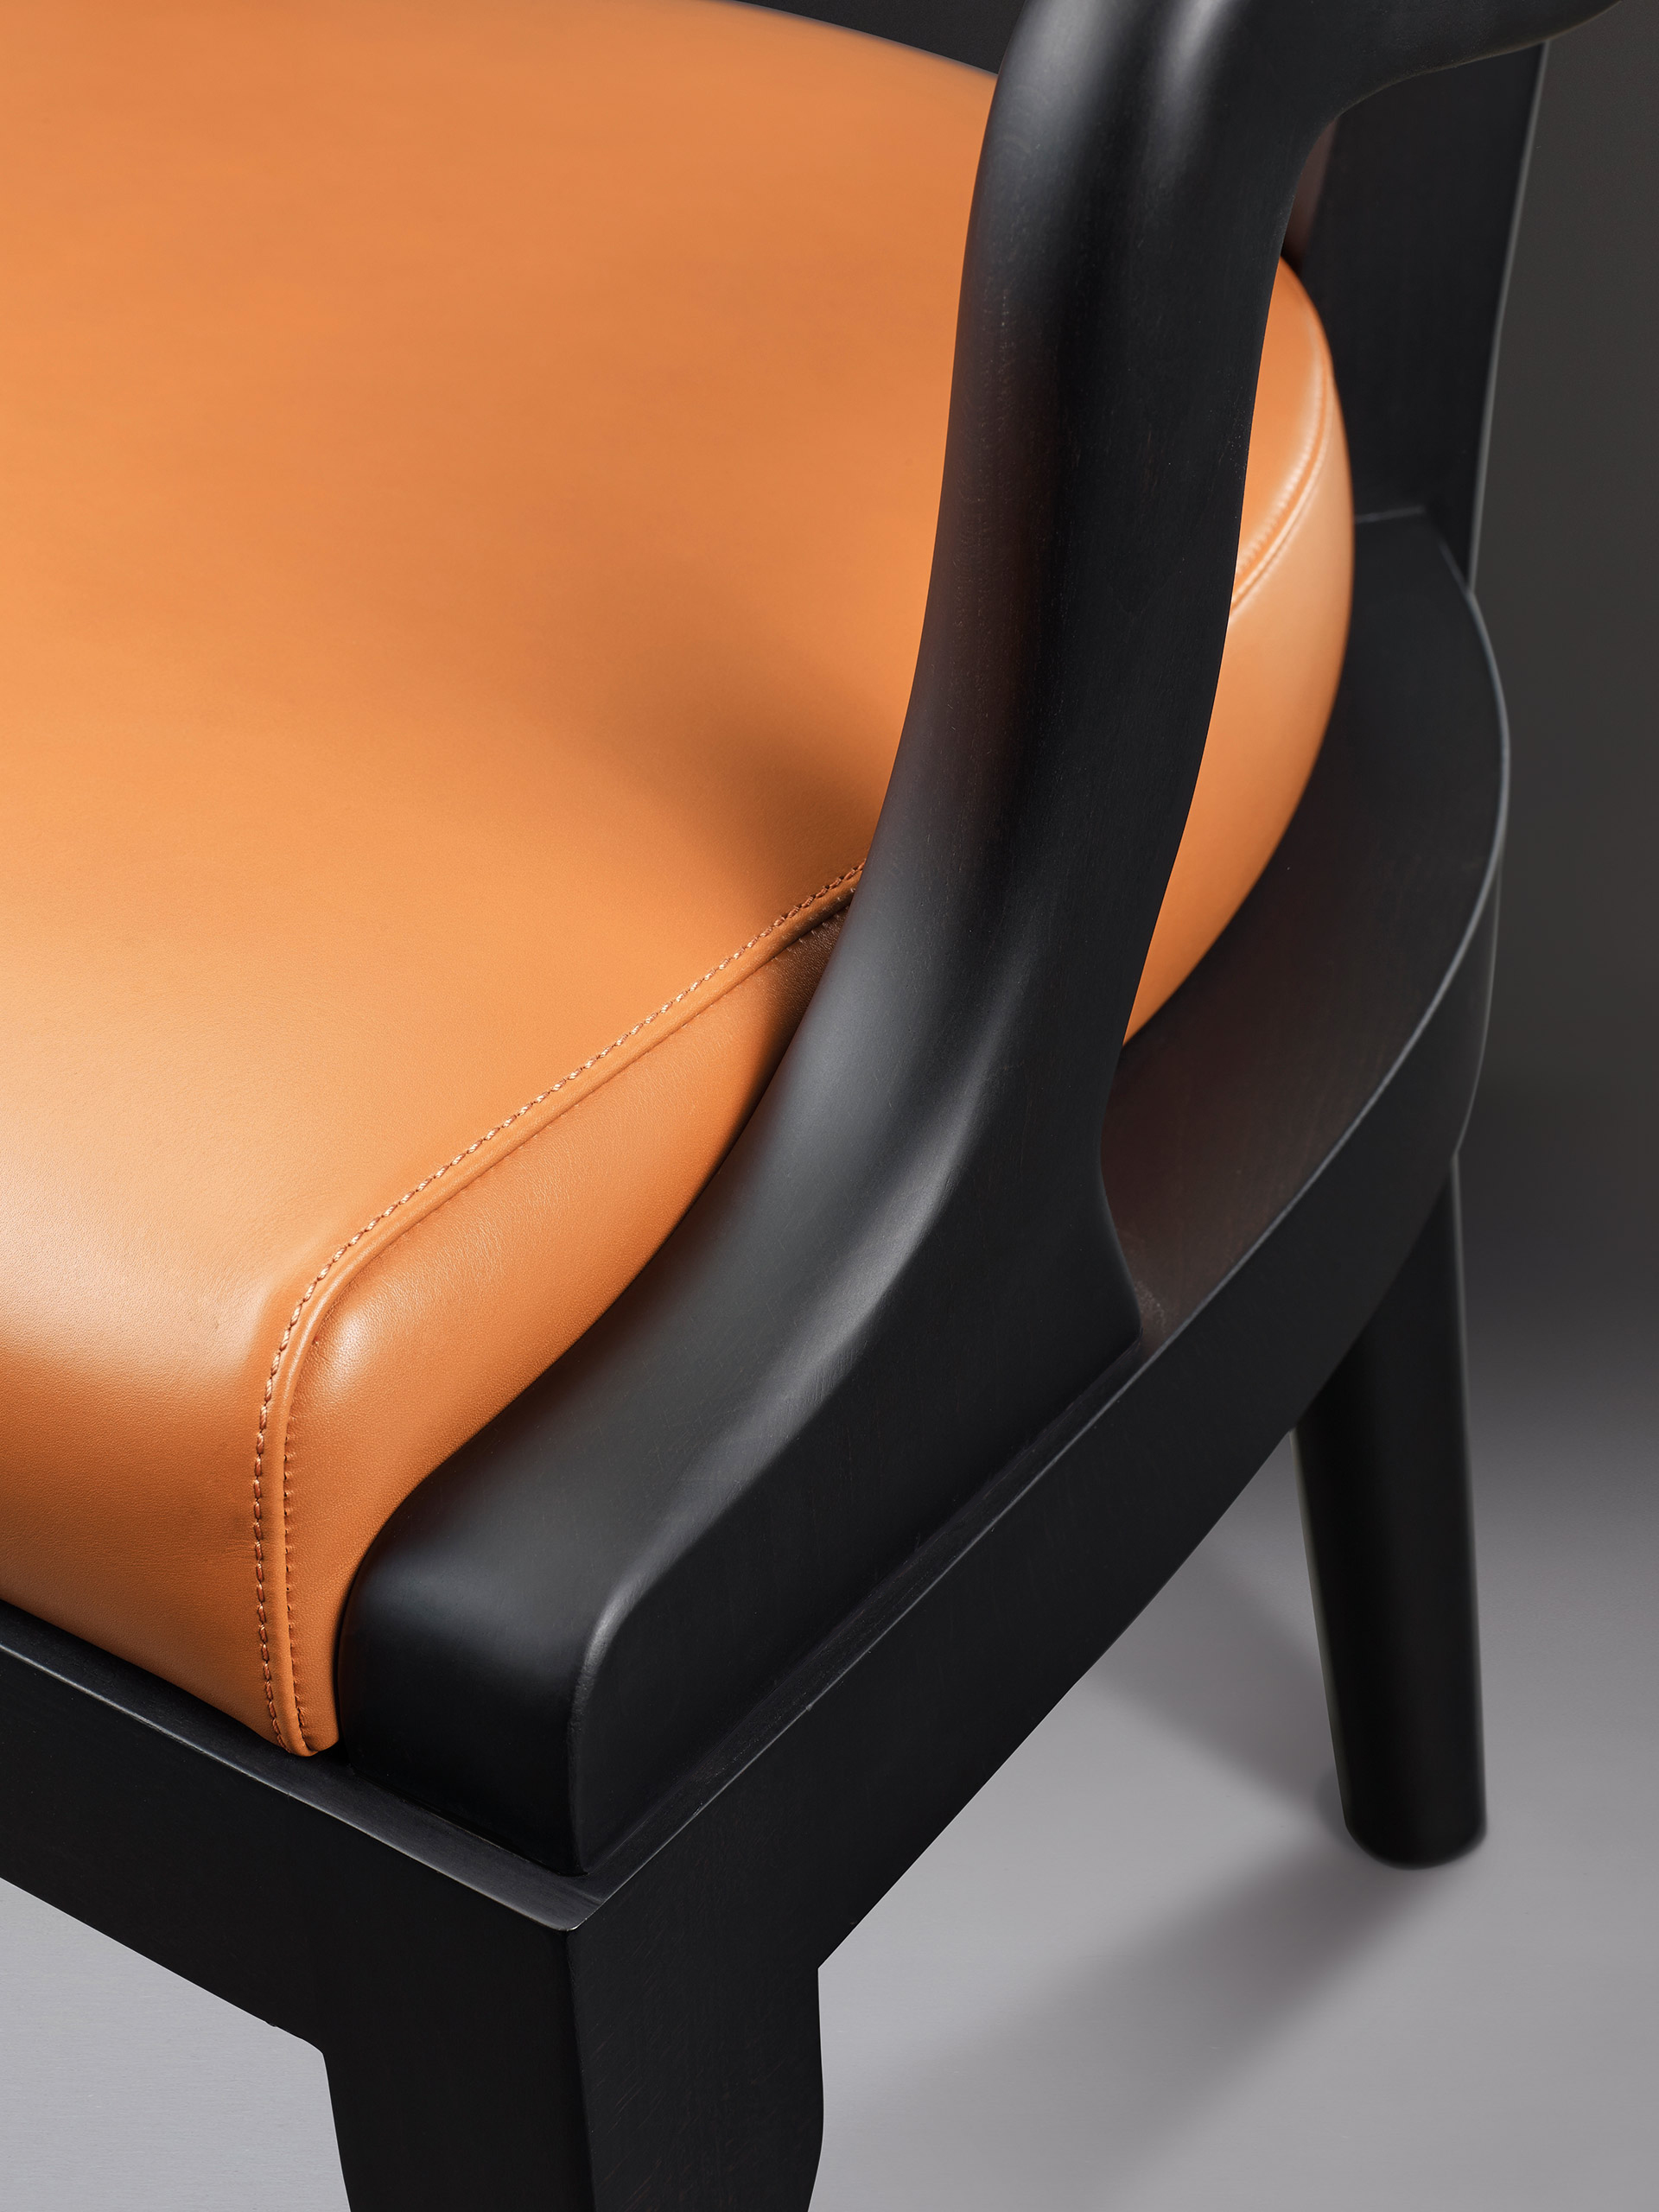 Detail of Sofia, a wooden dining chair with fabric or leather seat and with armrests, from Promemoria's catalogue | Promemoria